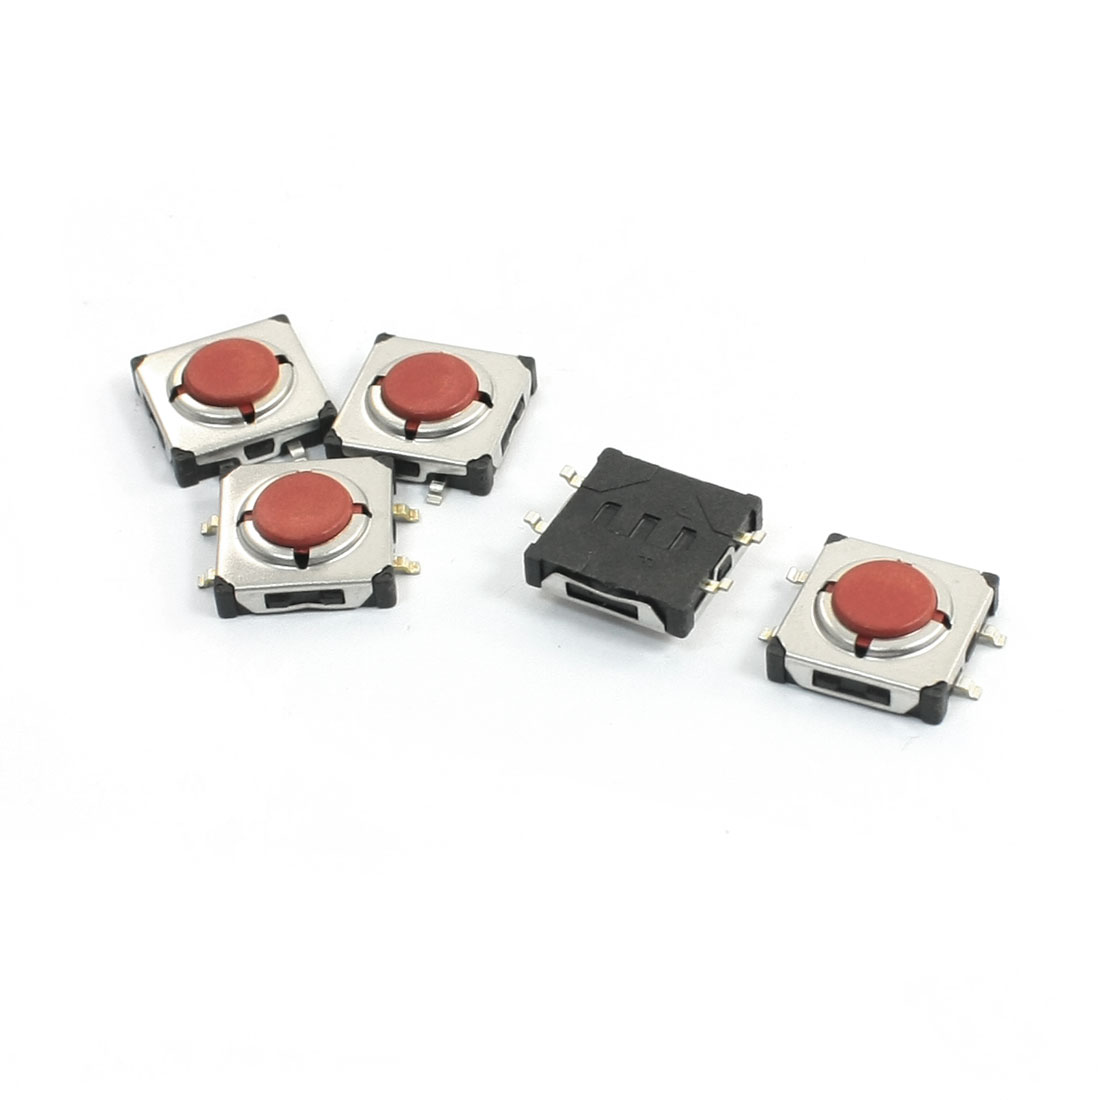 5 Pcs 12x12x4mm 4 Pins SMD Momentary Waterproof Tact Tactile Switches